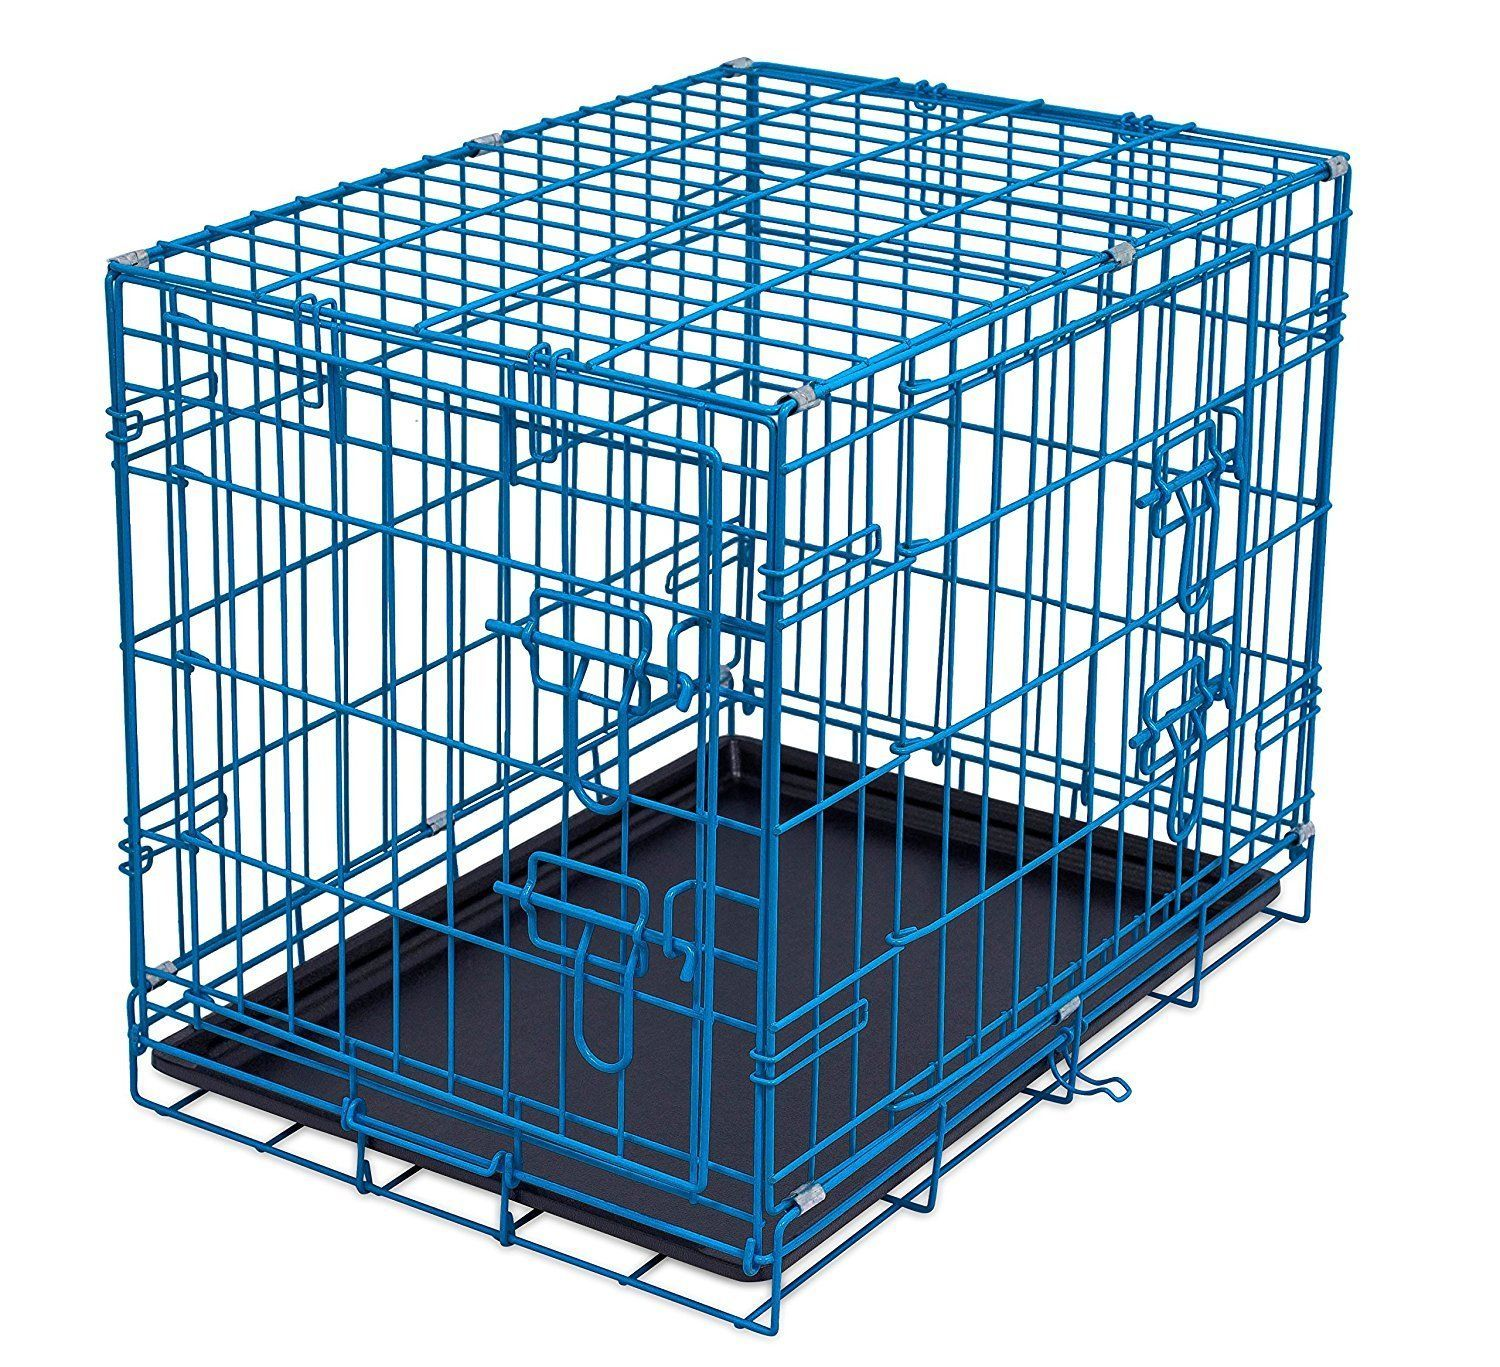 Internets Best Double Door Steel Crates Collapsible and Foldable ...